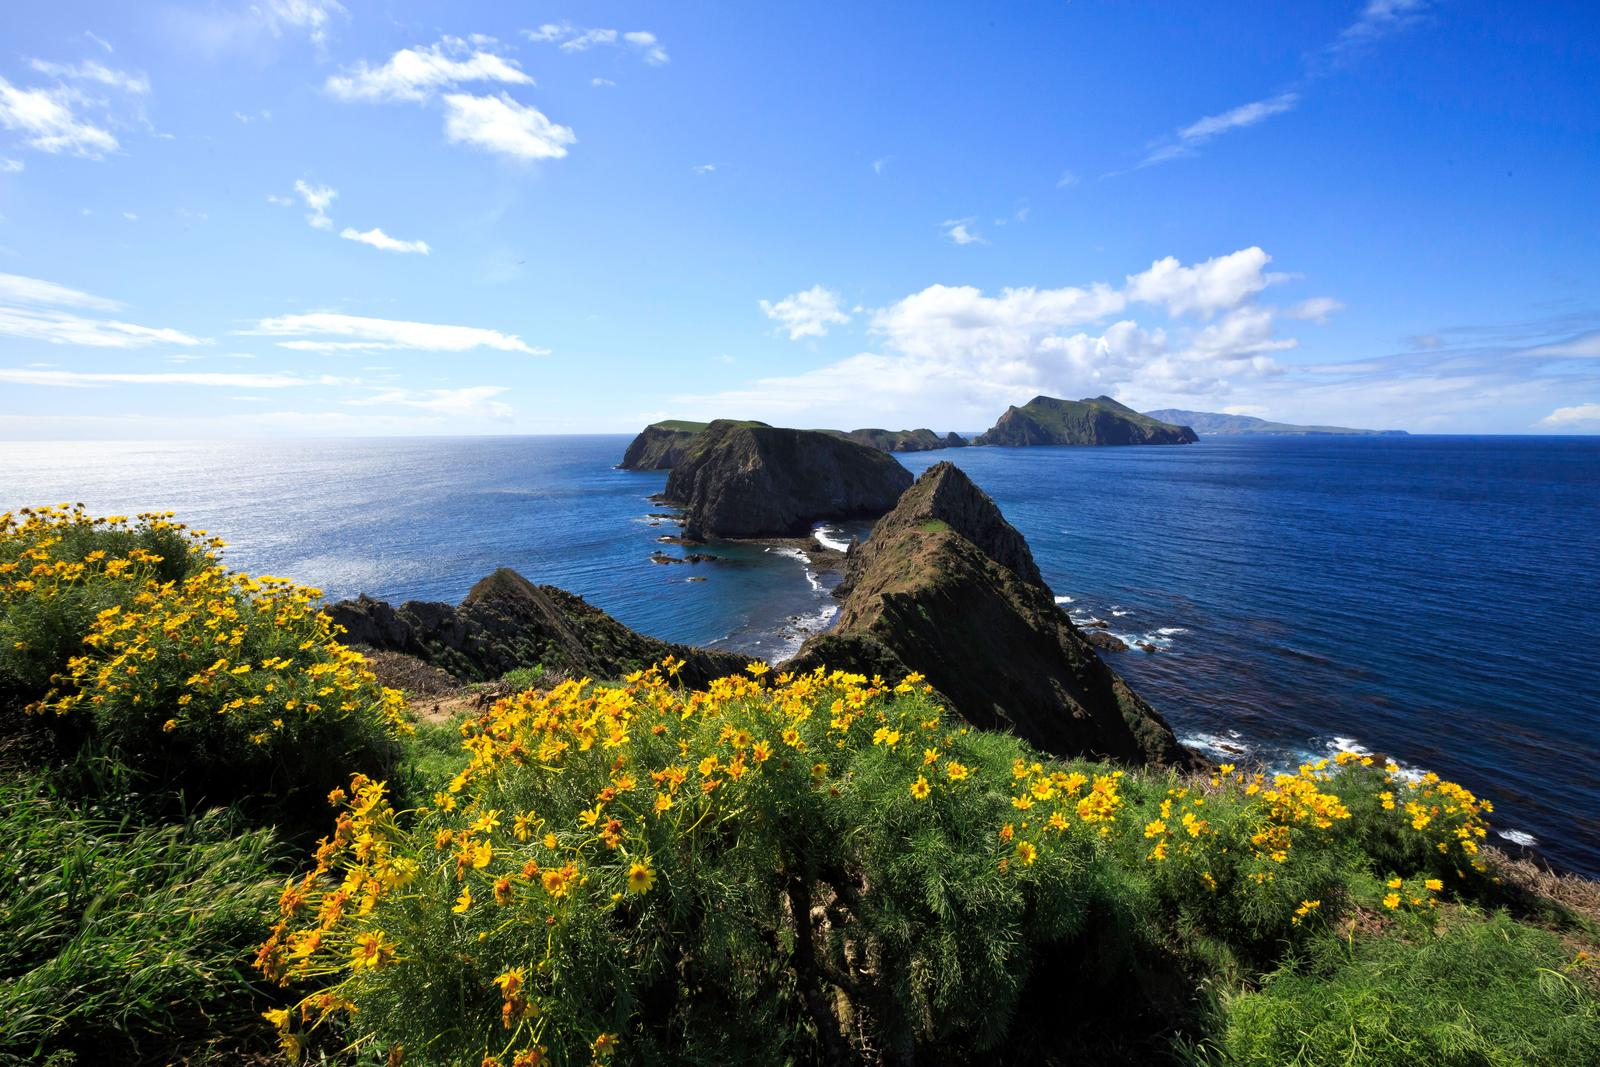 Yellow flowered plant on ocean bluff overlooking three islets and the surrounding ocean.Inspiration Point, Anacapa Island